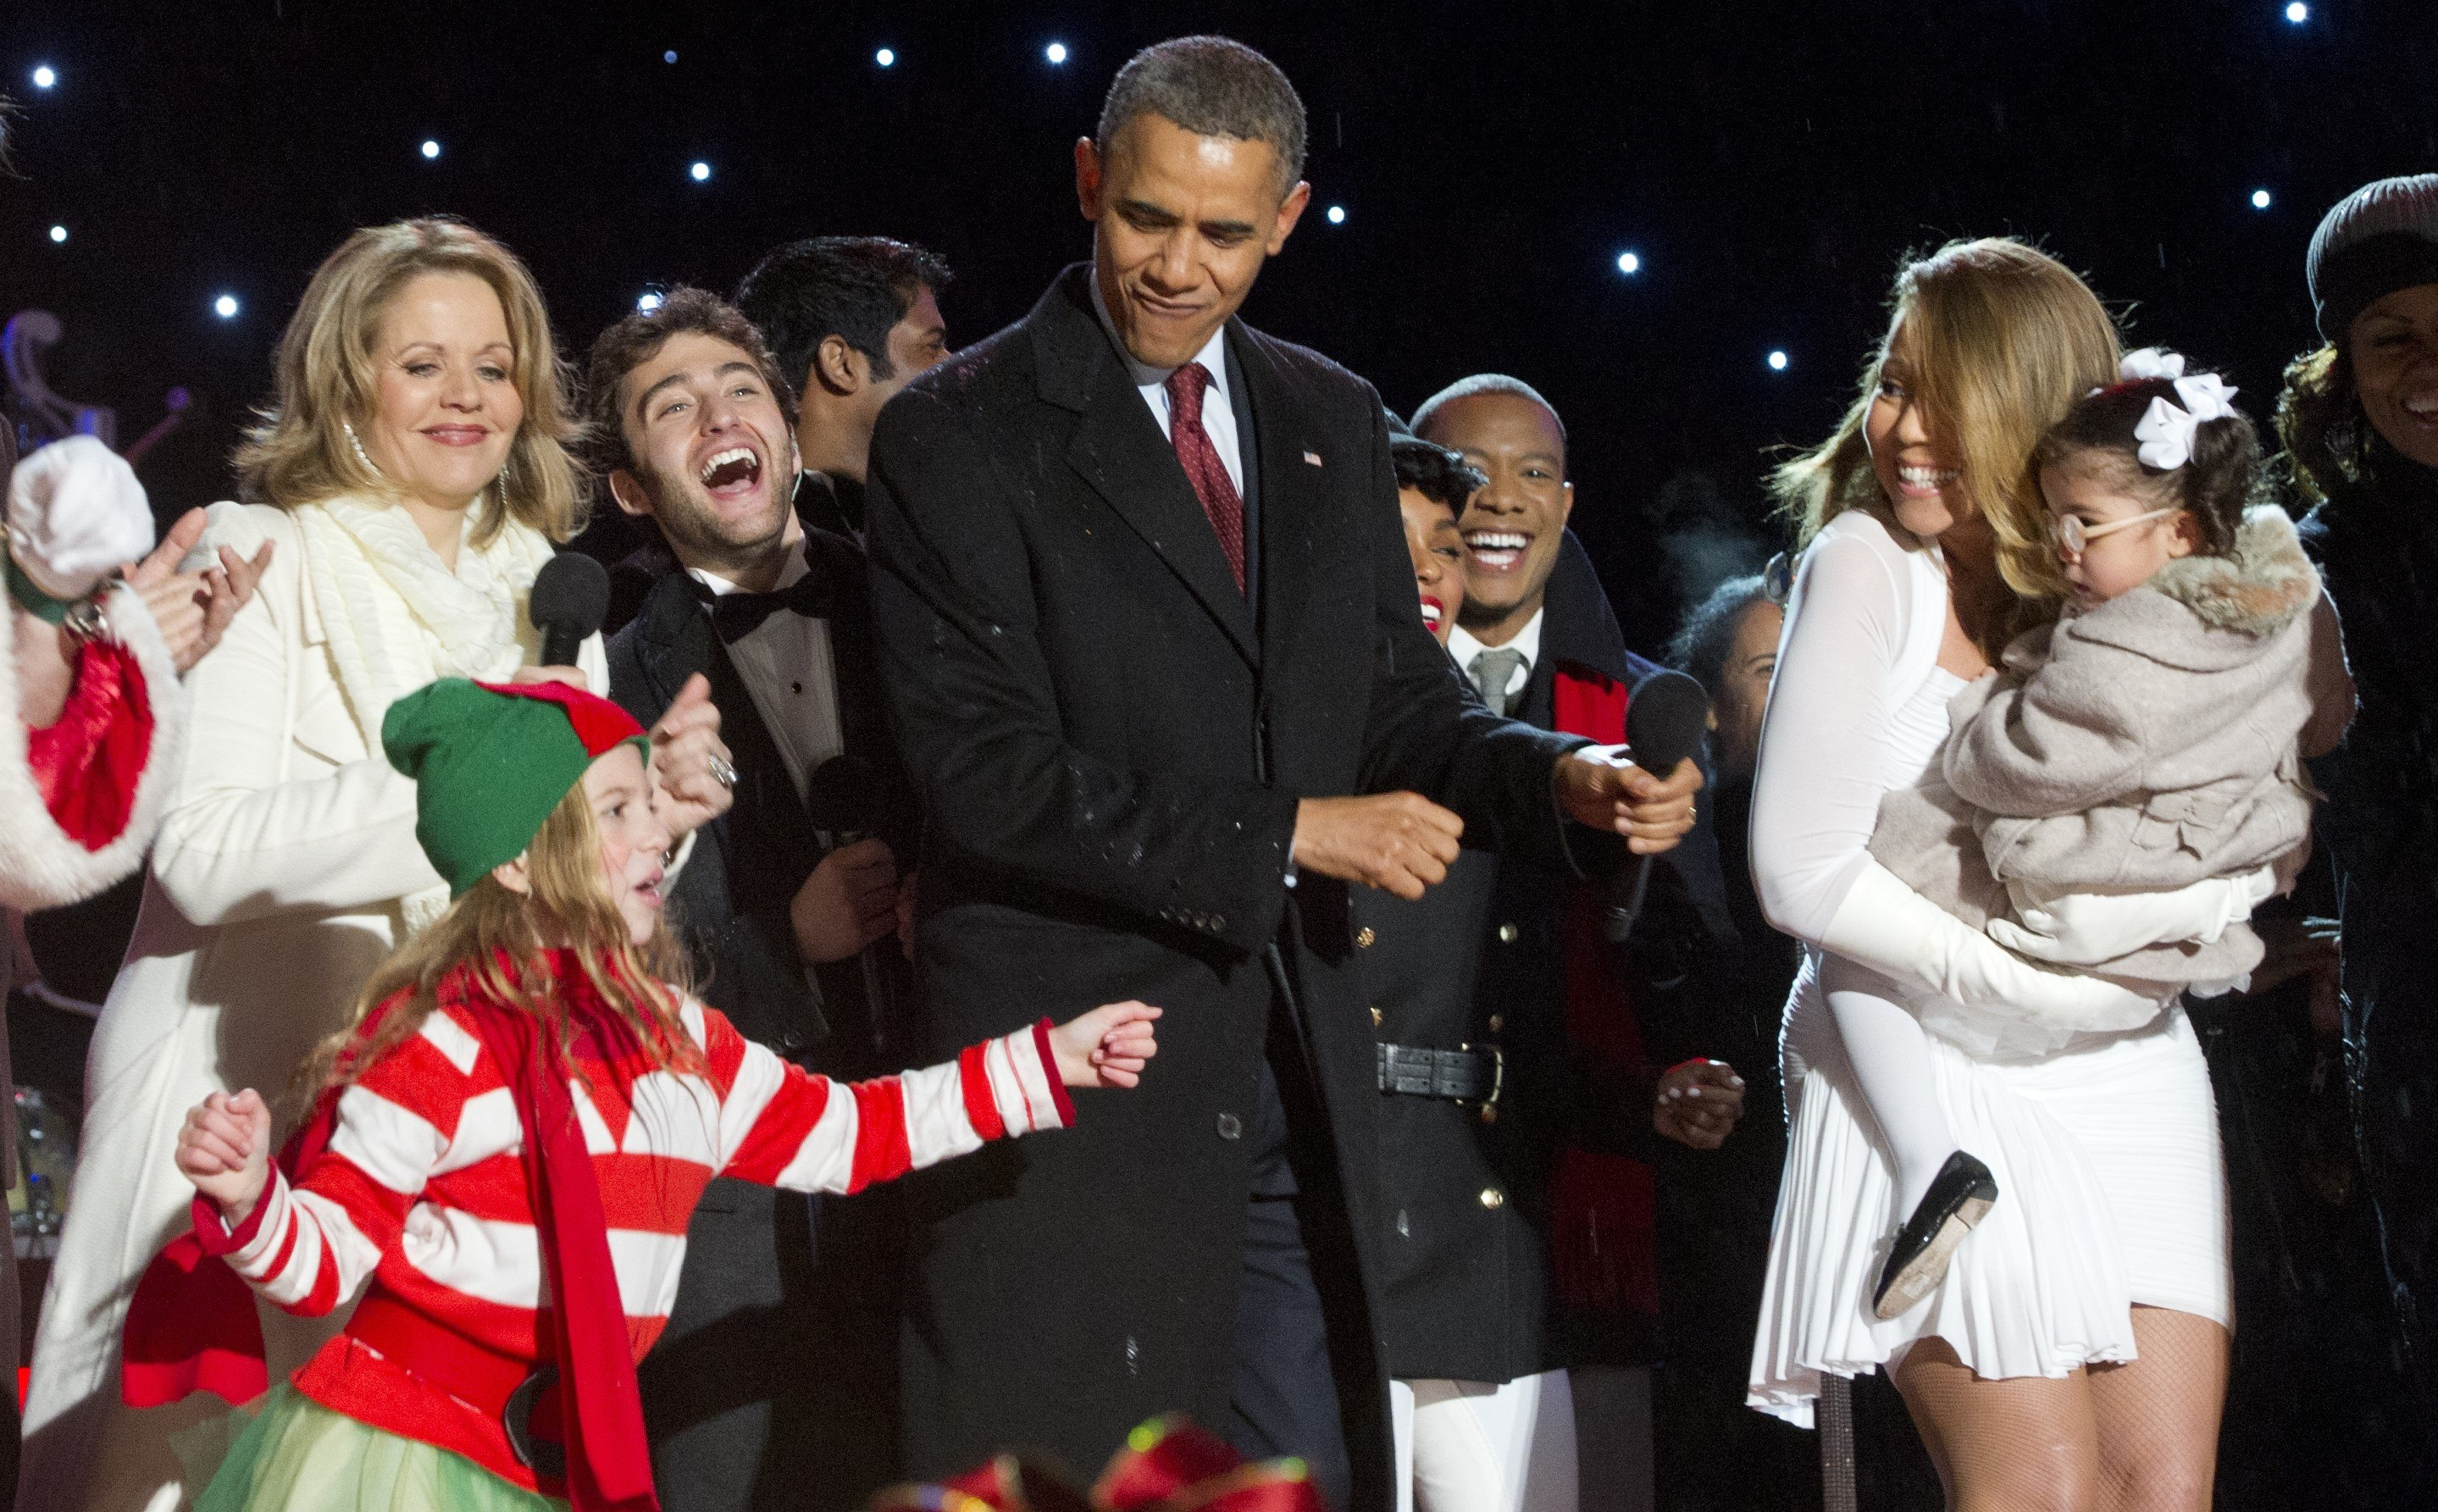 Barack Obama and Mariah Carrey Christmas performance